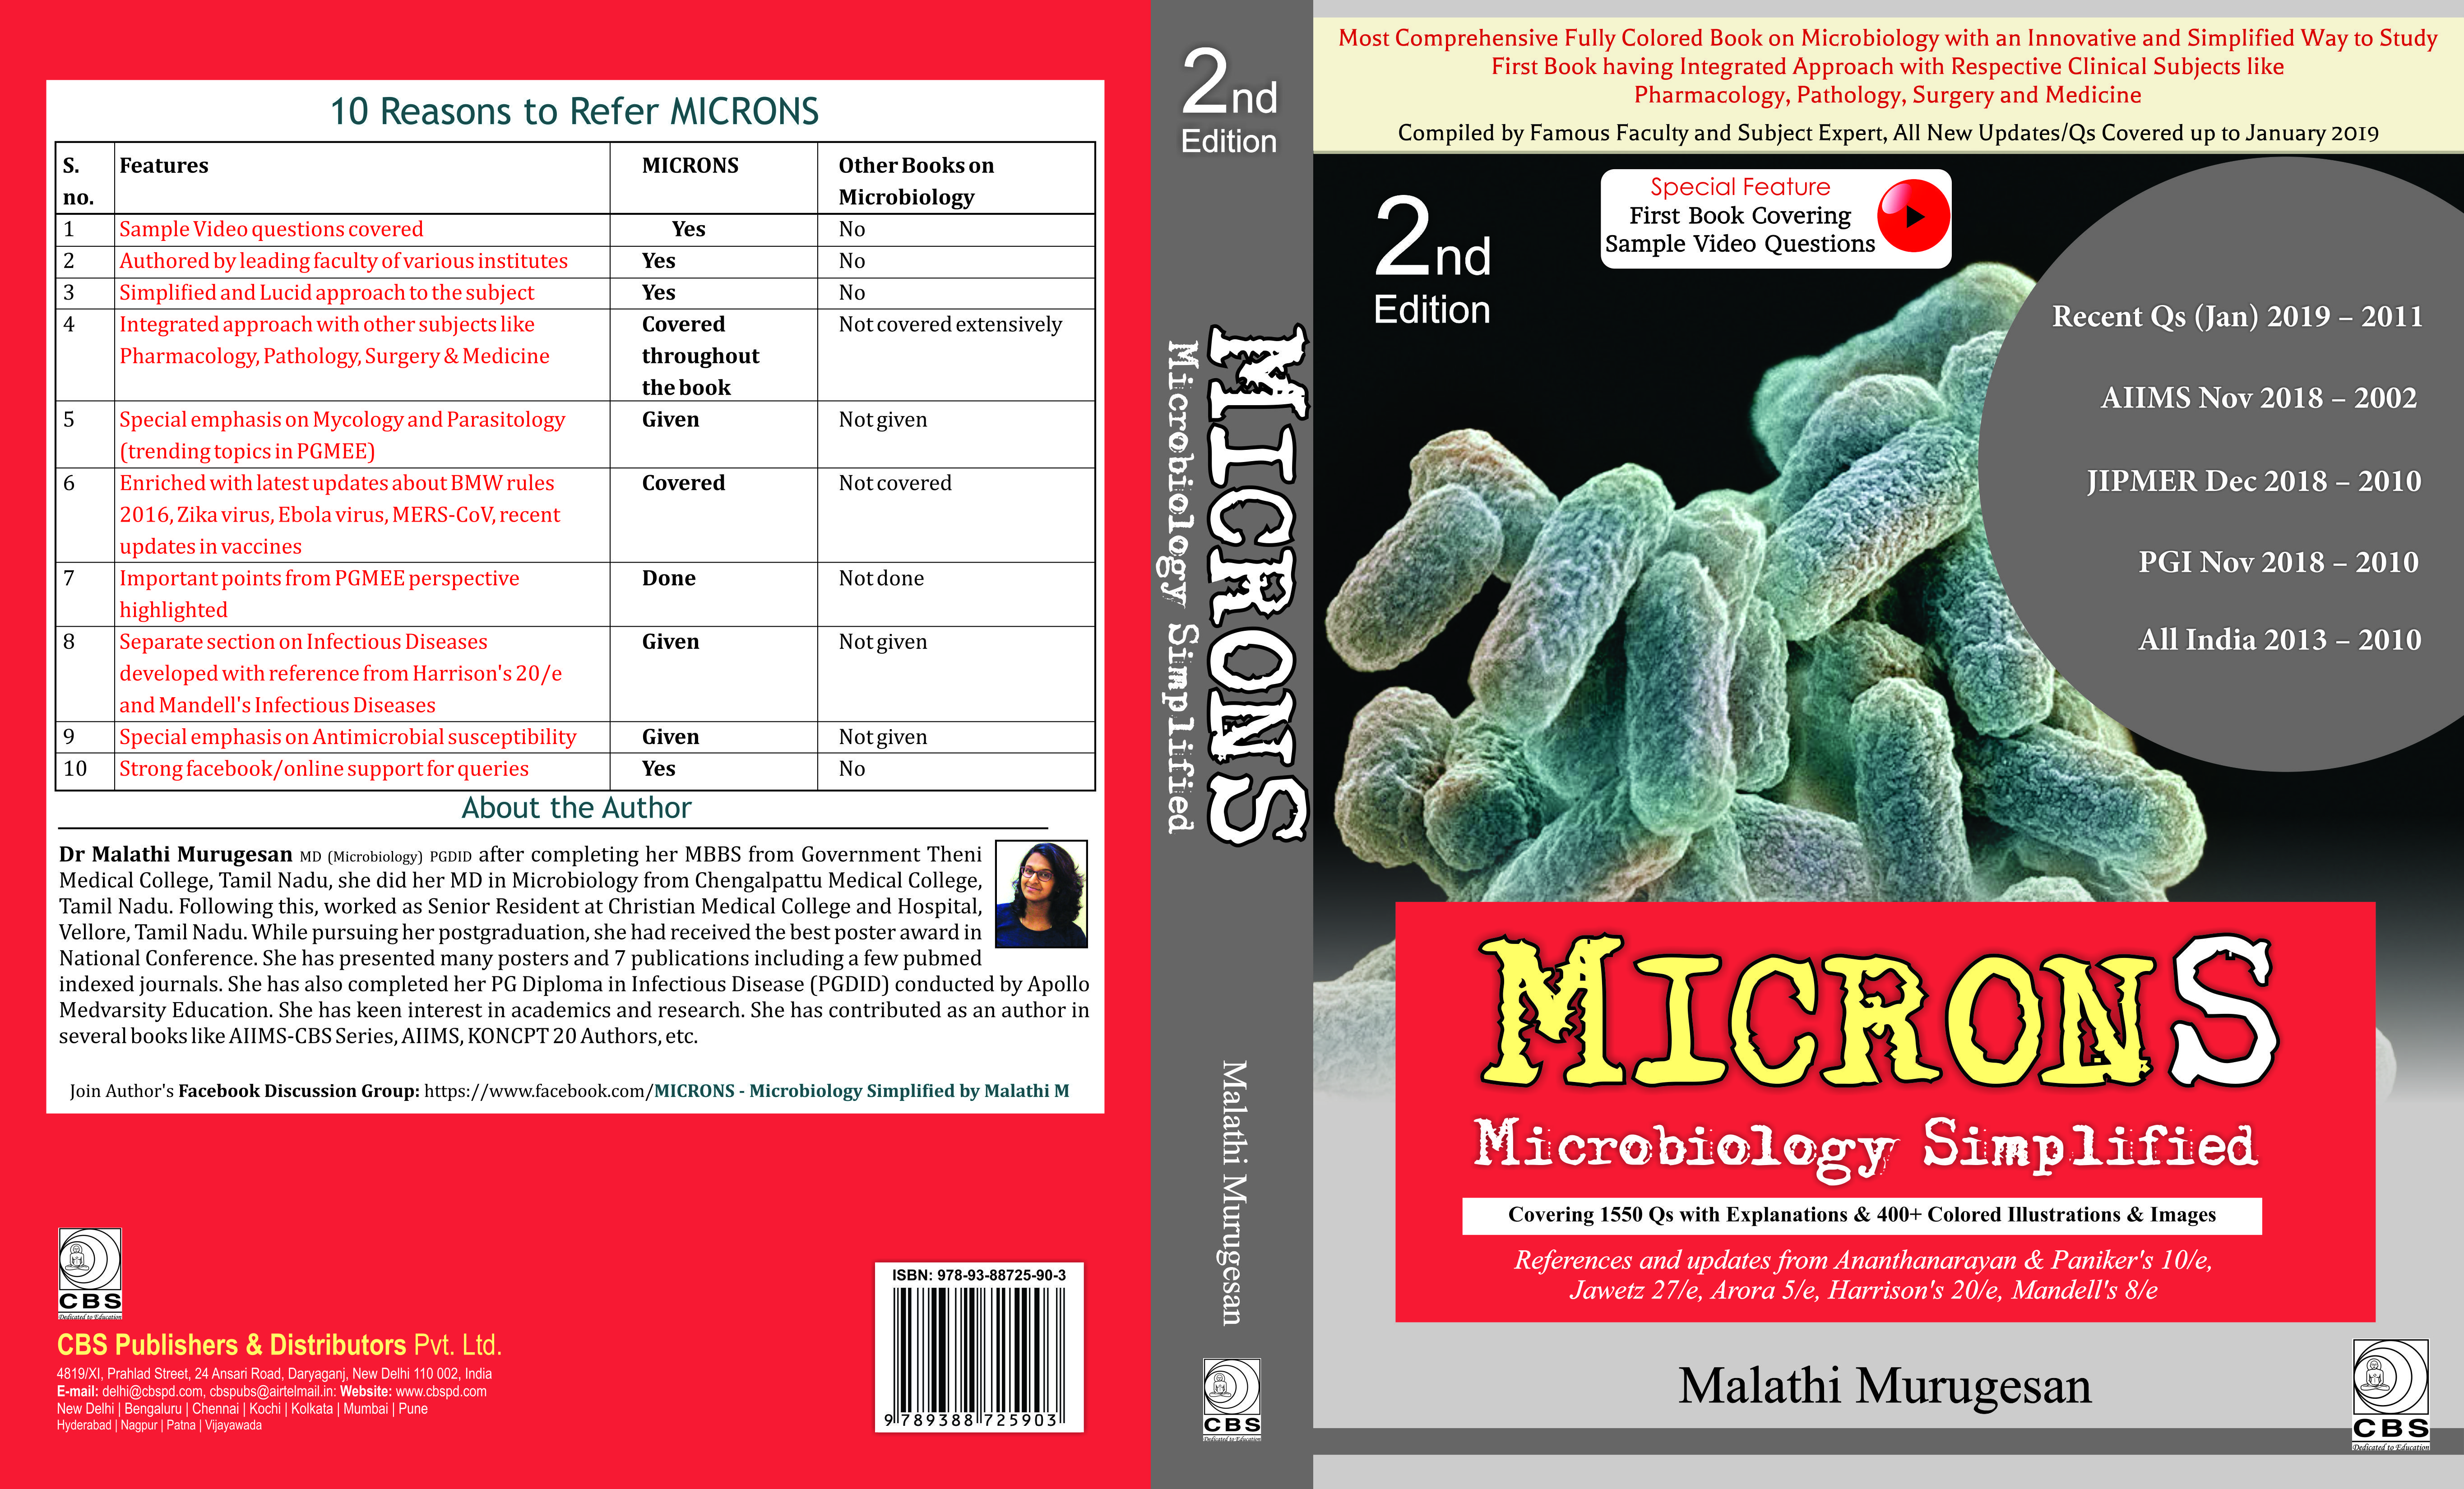 Buy MICRONS-Microbiology Simplified 2nd edition | Latest